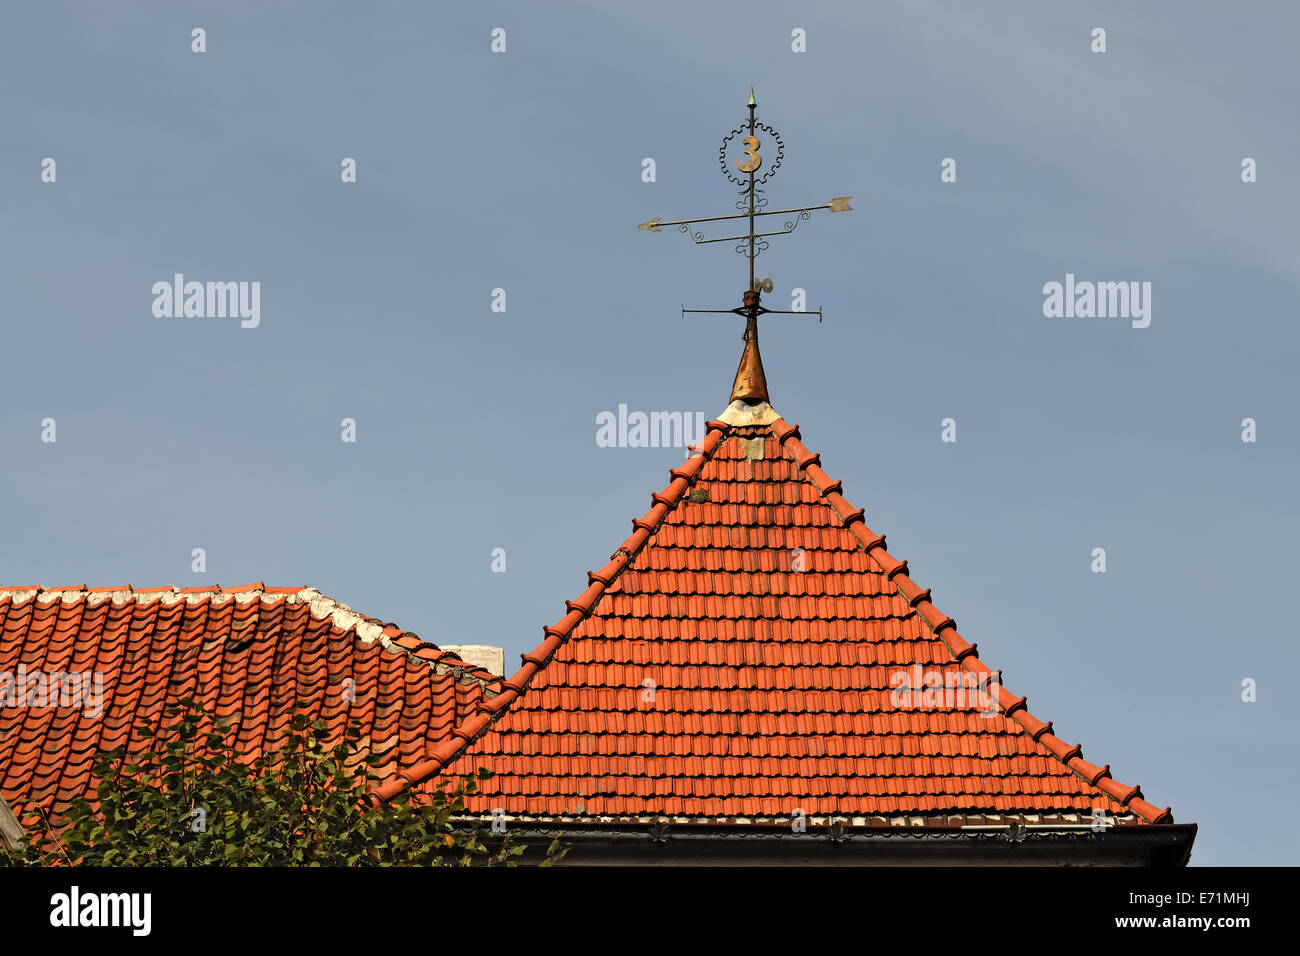 What is the roofing capital of Russia